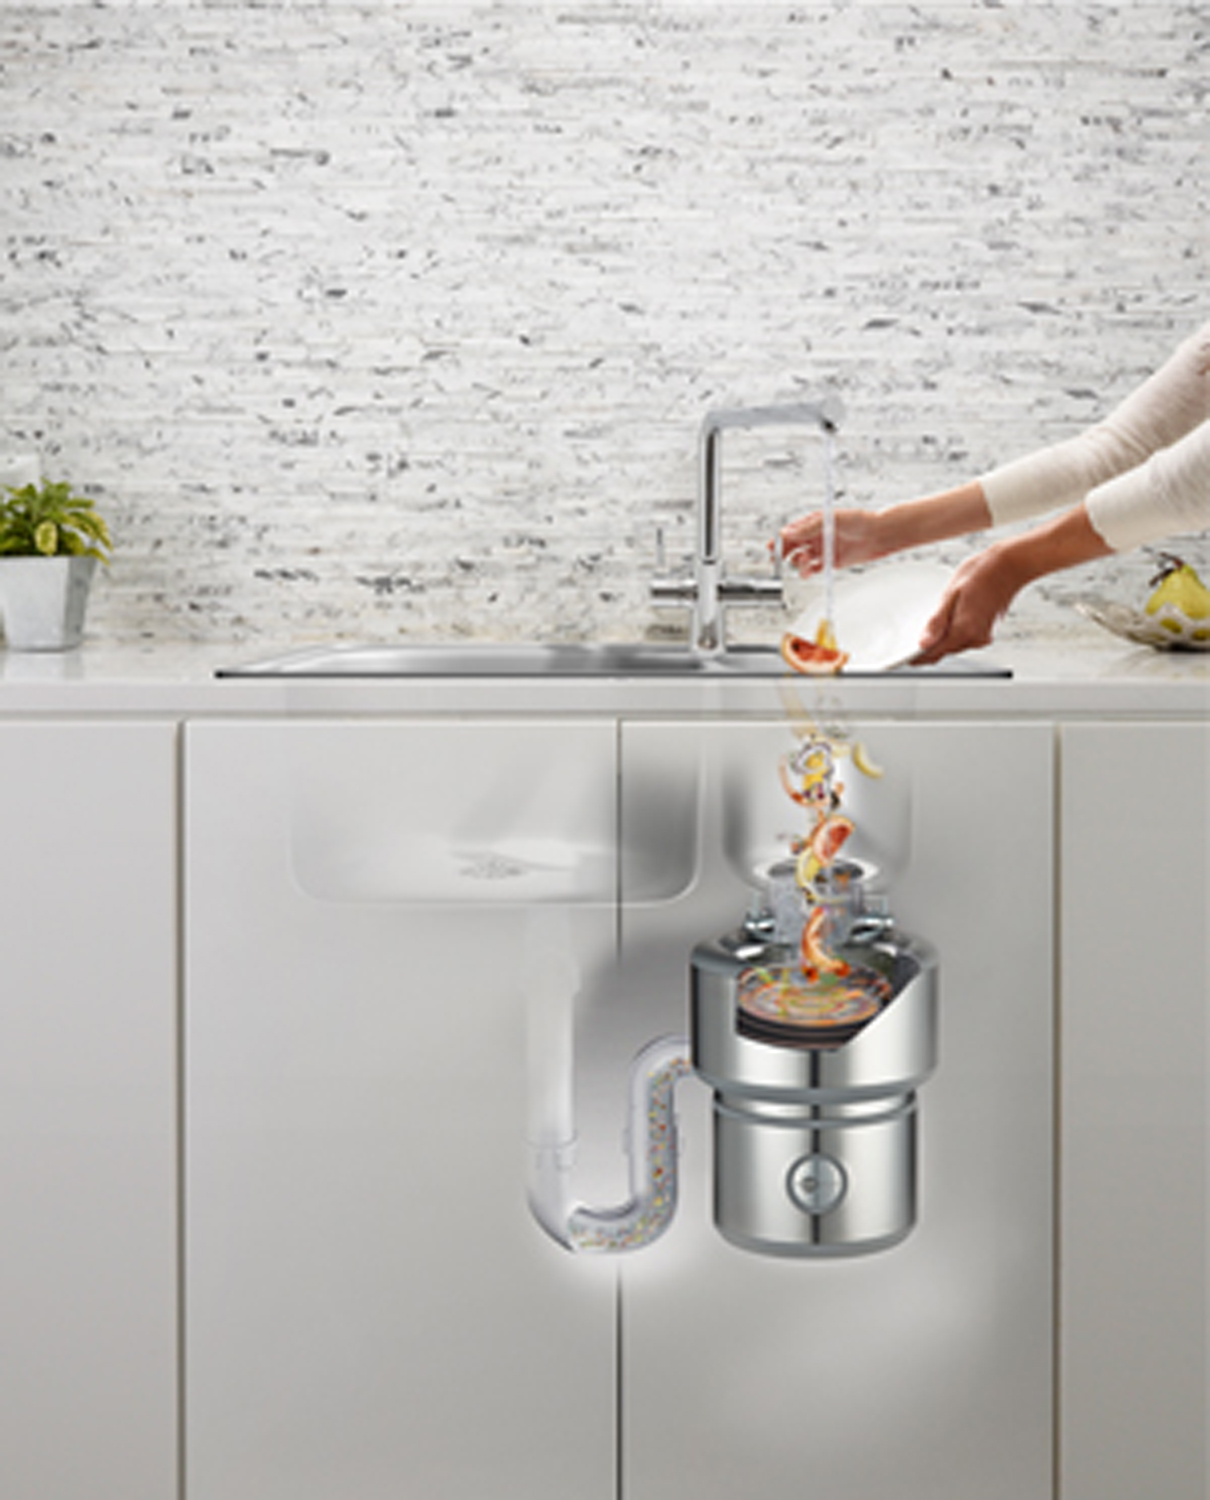 Waste disposer: essential for modern kitchens